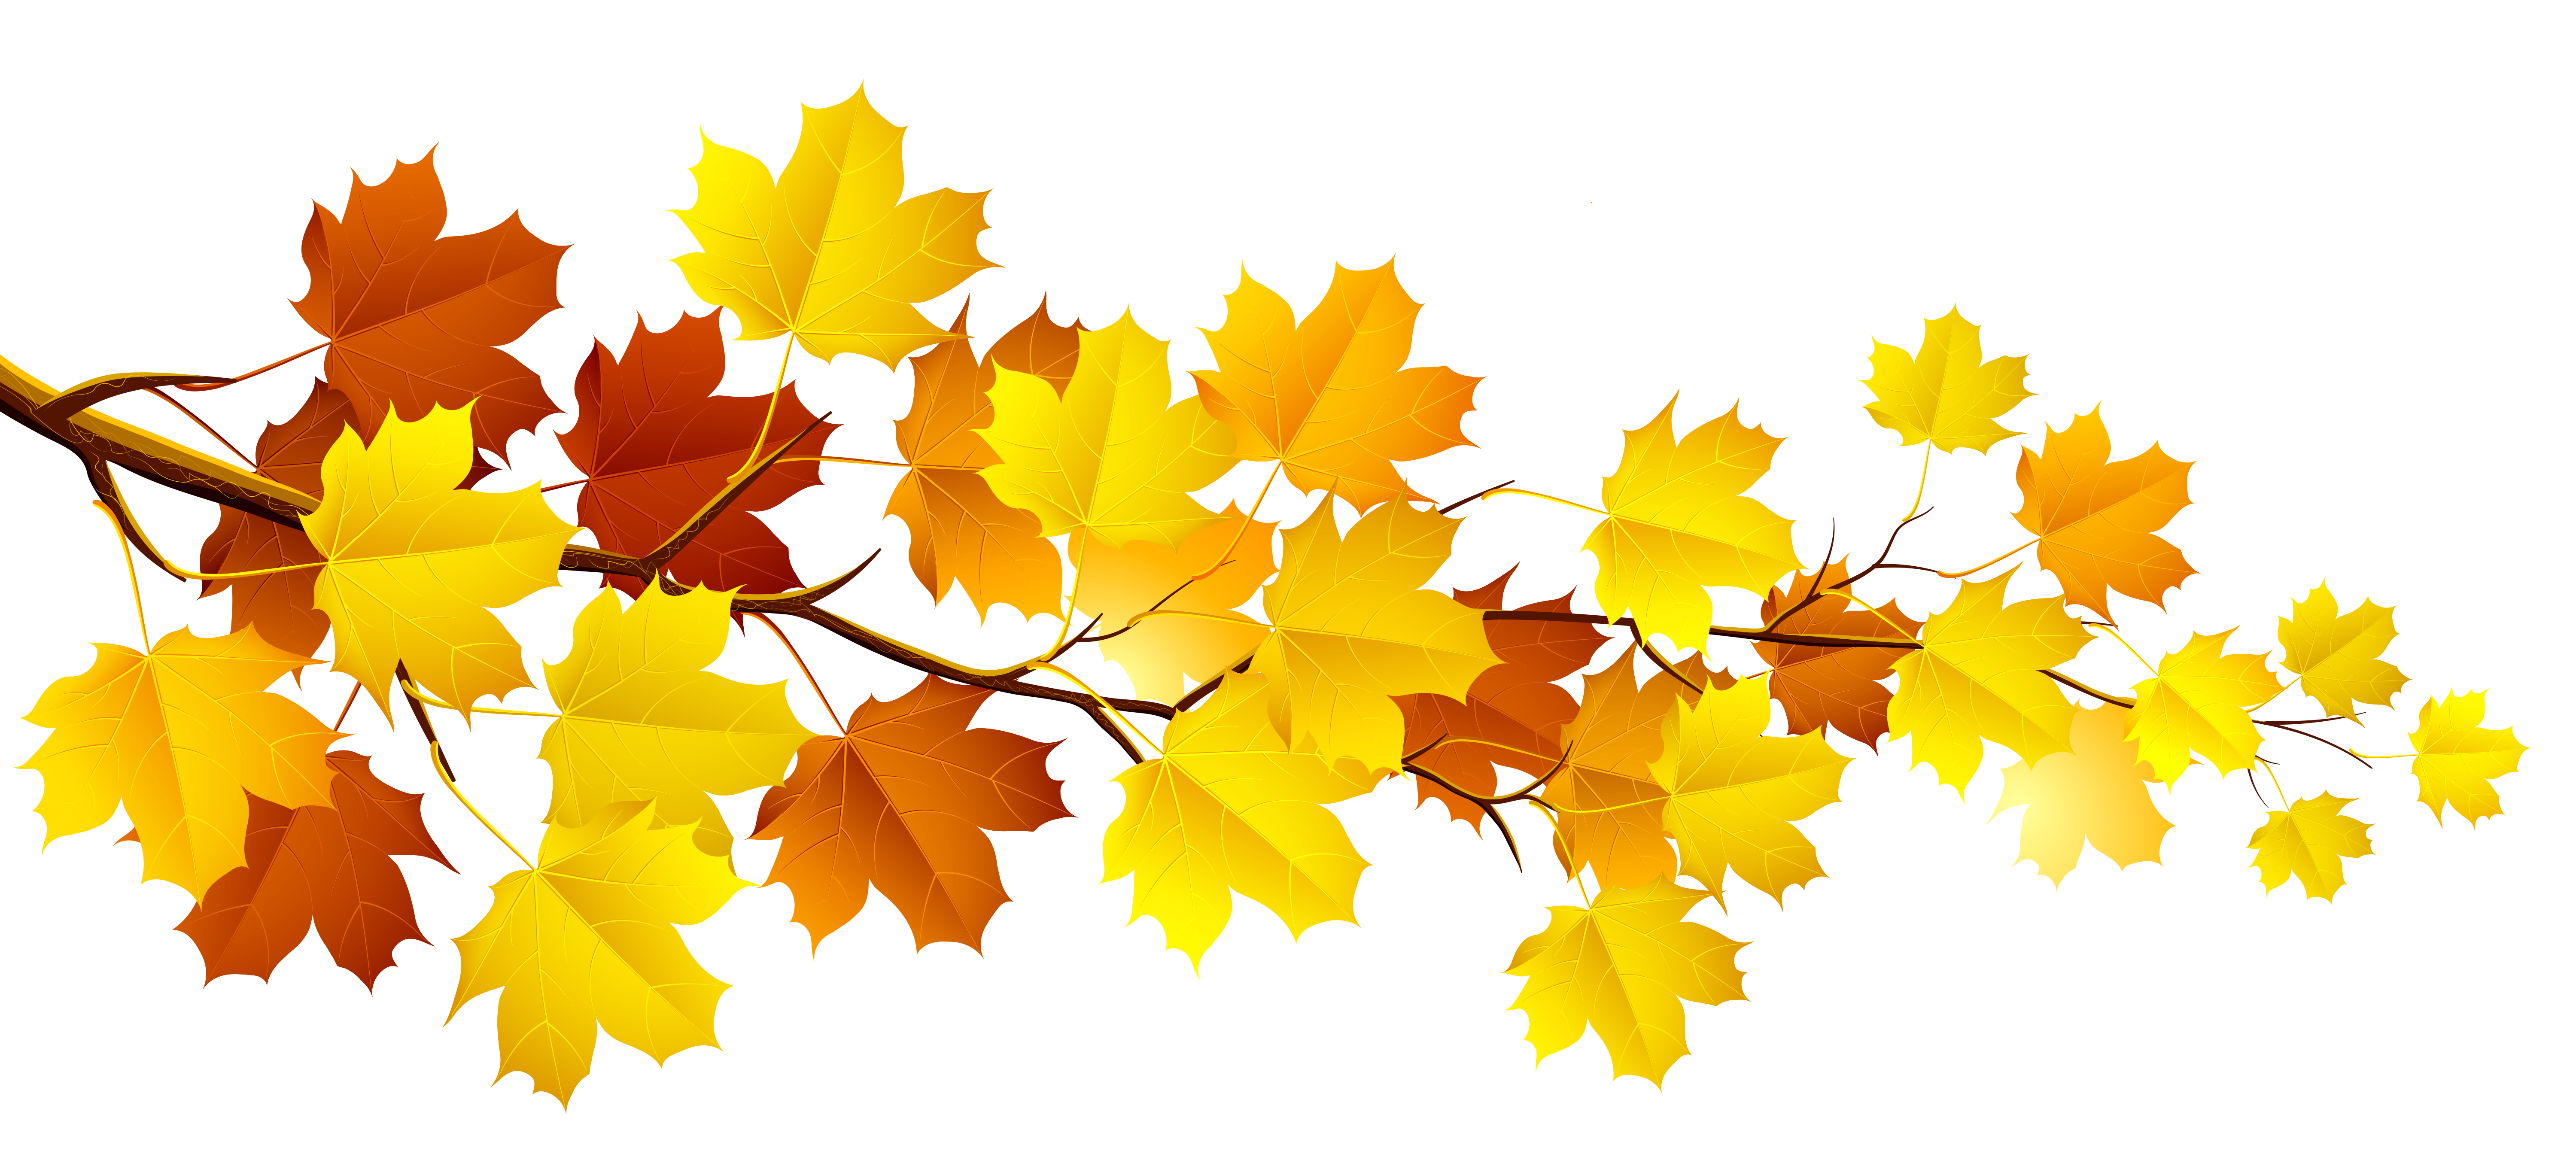 Fall leaves clipart free clipart images 3 clipartcow.